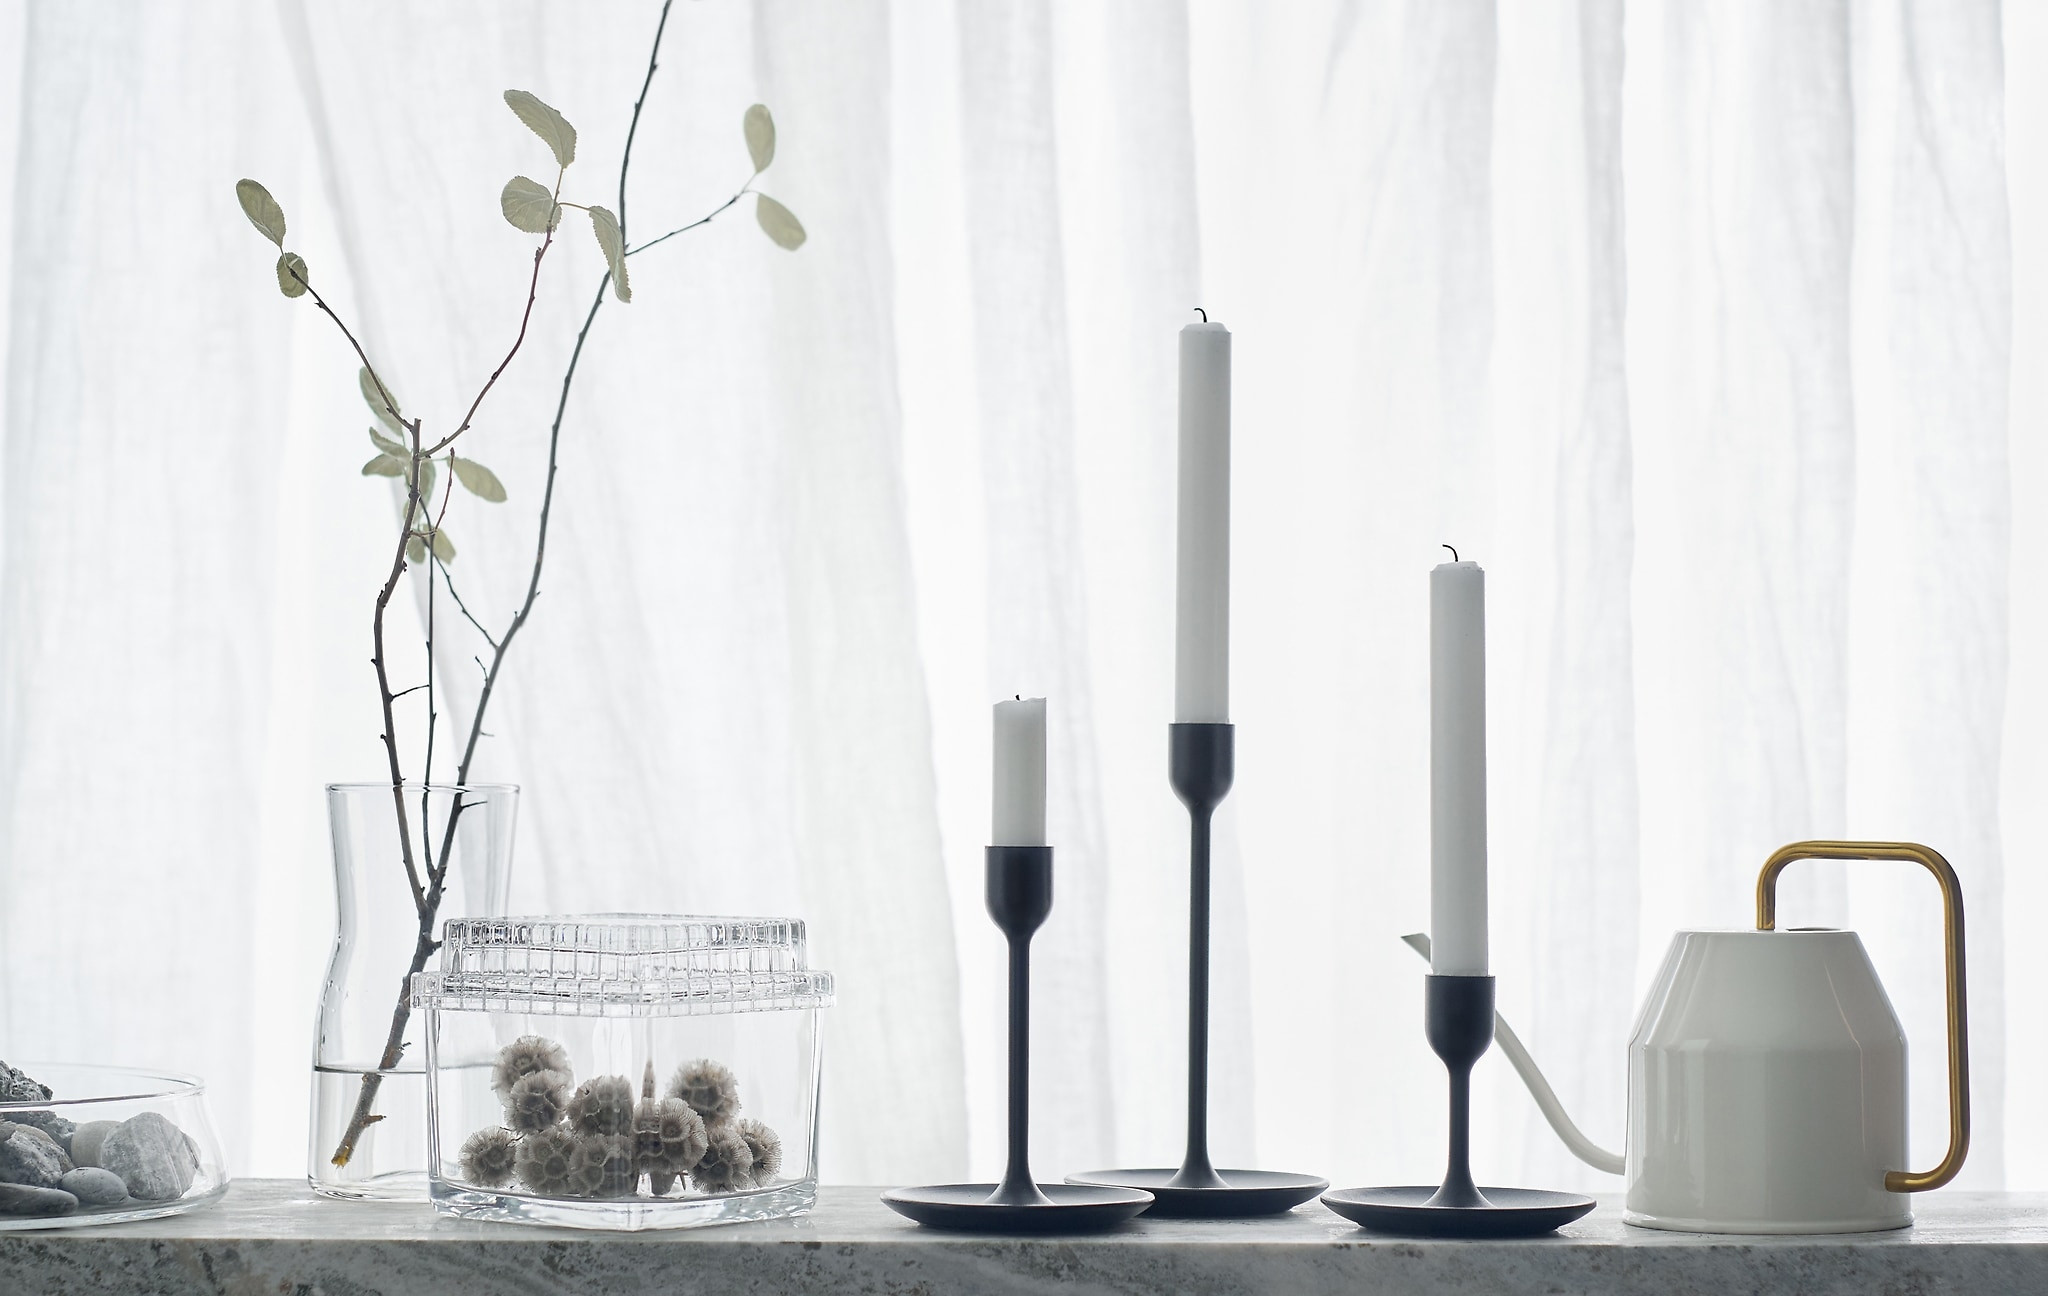 ikea glass bowl vase of ideas ikea intended for three black candlesticks of different heights on a white backdrop with watering can and glass jars